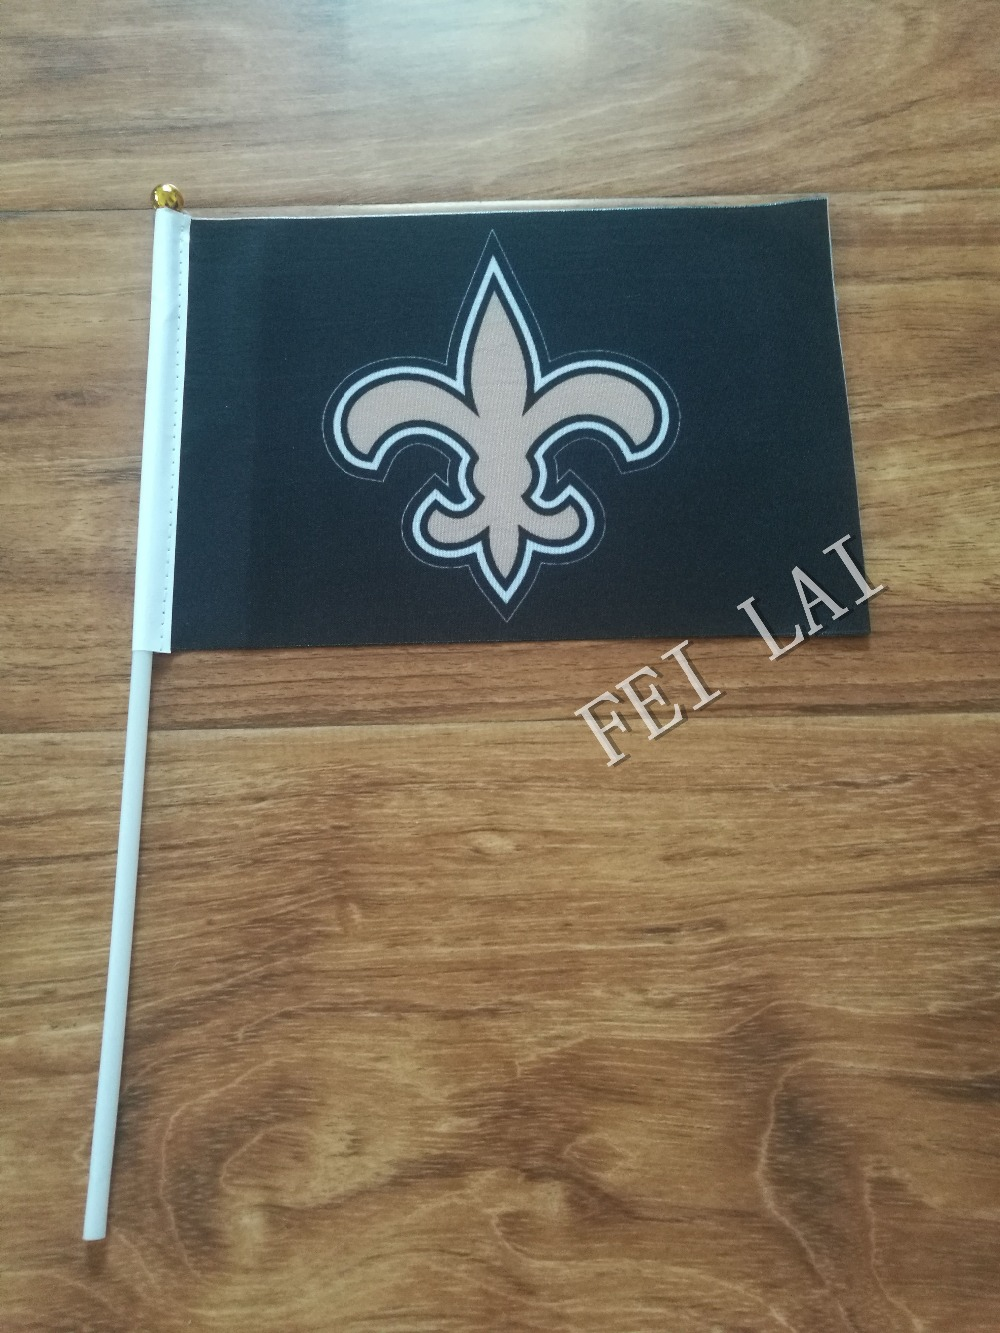 10pcs lot national flag country flag stick flags flag of the united - New Orleans Saints Flag 21 X 14cm Flag Hand Wave Flags Activities Party Decorations 10 Pcs